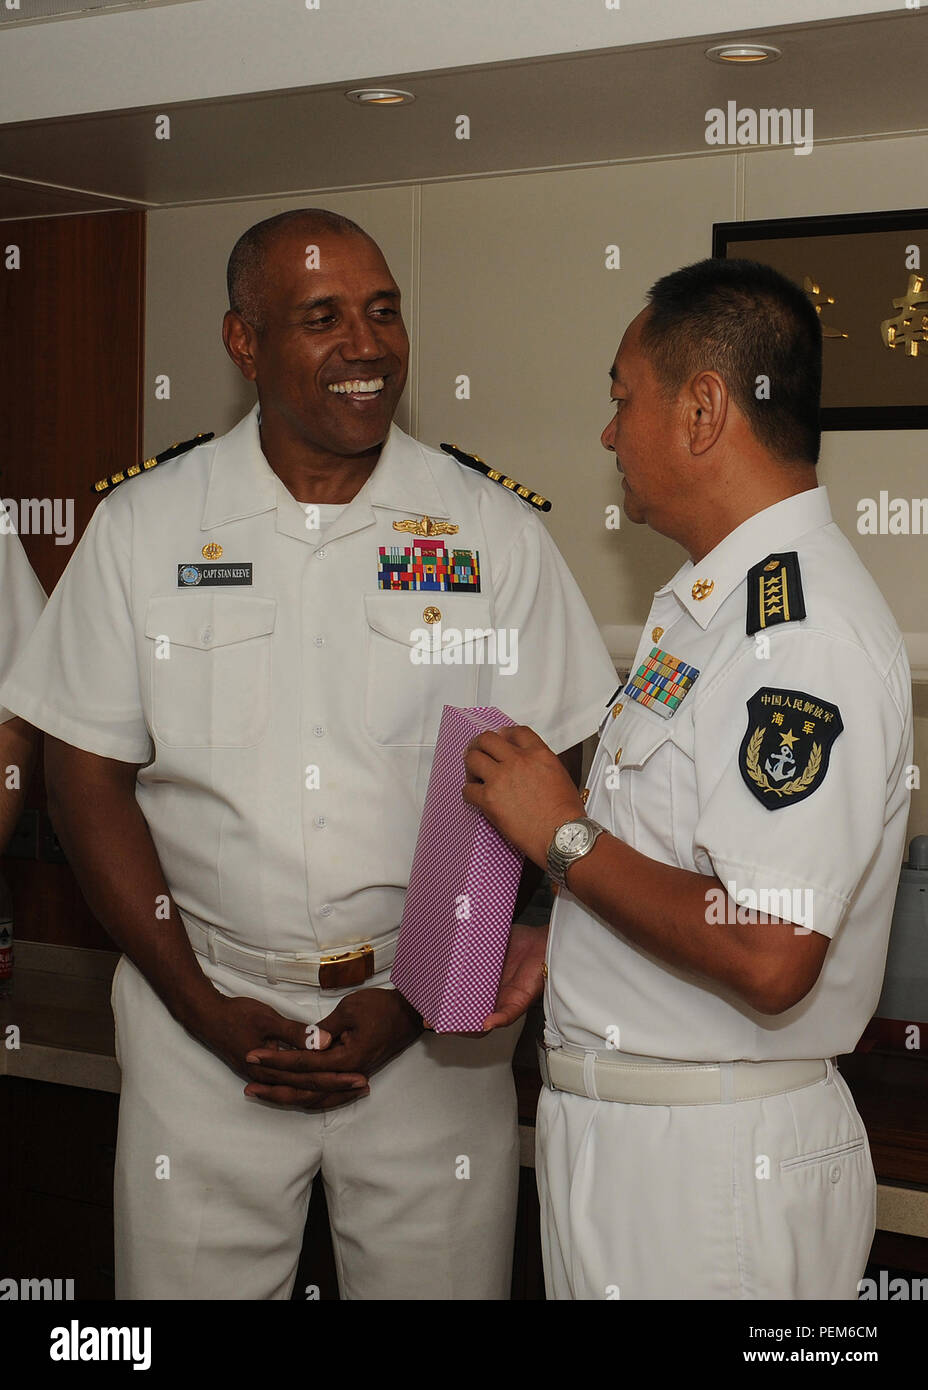 151213-N-ZK021-010   PEARL HARBOR (Dec. 13, 2015) Senior Captain Wang Jianxum, deputy chief of staff of East Sea Fleet, People's Liberation Army (Navy) and commander, Escort Task Group, CNS Jinan (DDG-152) presents a gift to Capt. Stanley Keeve, commander, Joint Base Pearl Harbor-Hickam during a visit aboard CNS Jinan (DDG-152). The port visit demonstrates parity and reciprocity between two maritime nations. As part of a planned series of military-to-military exchanges between two nations, Chinese and U.S. naval officers will conduct dialogues to build confidence and mutual understanding. Duri - Stock Image